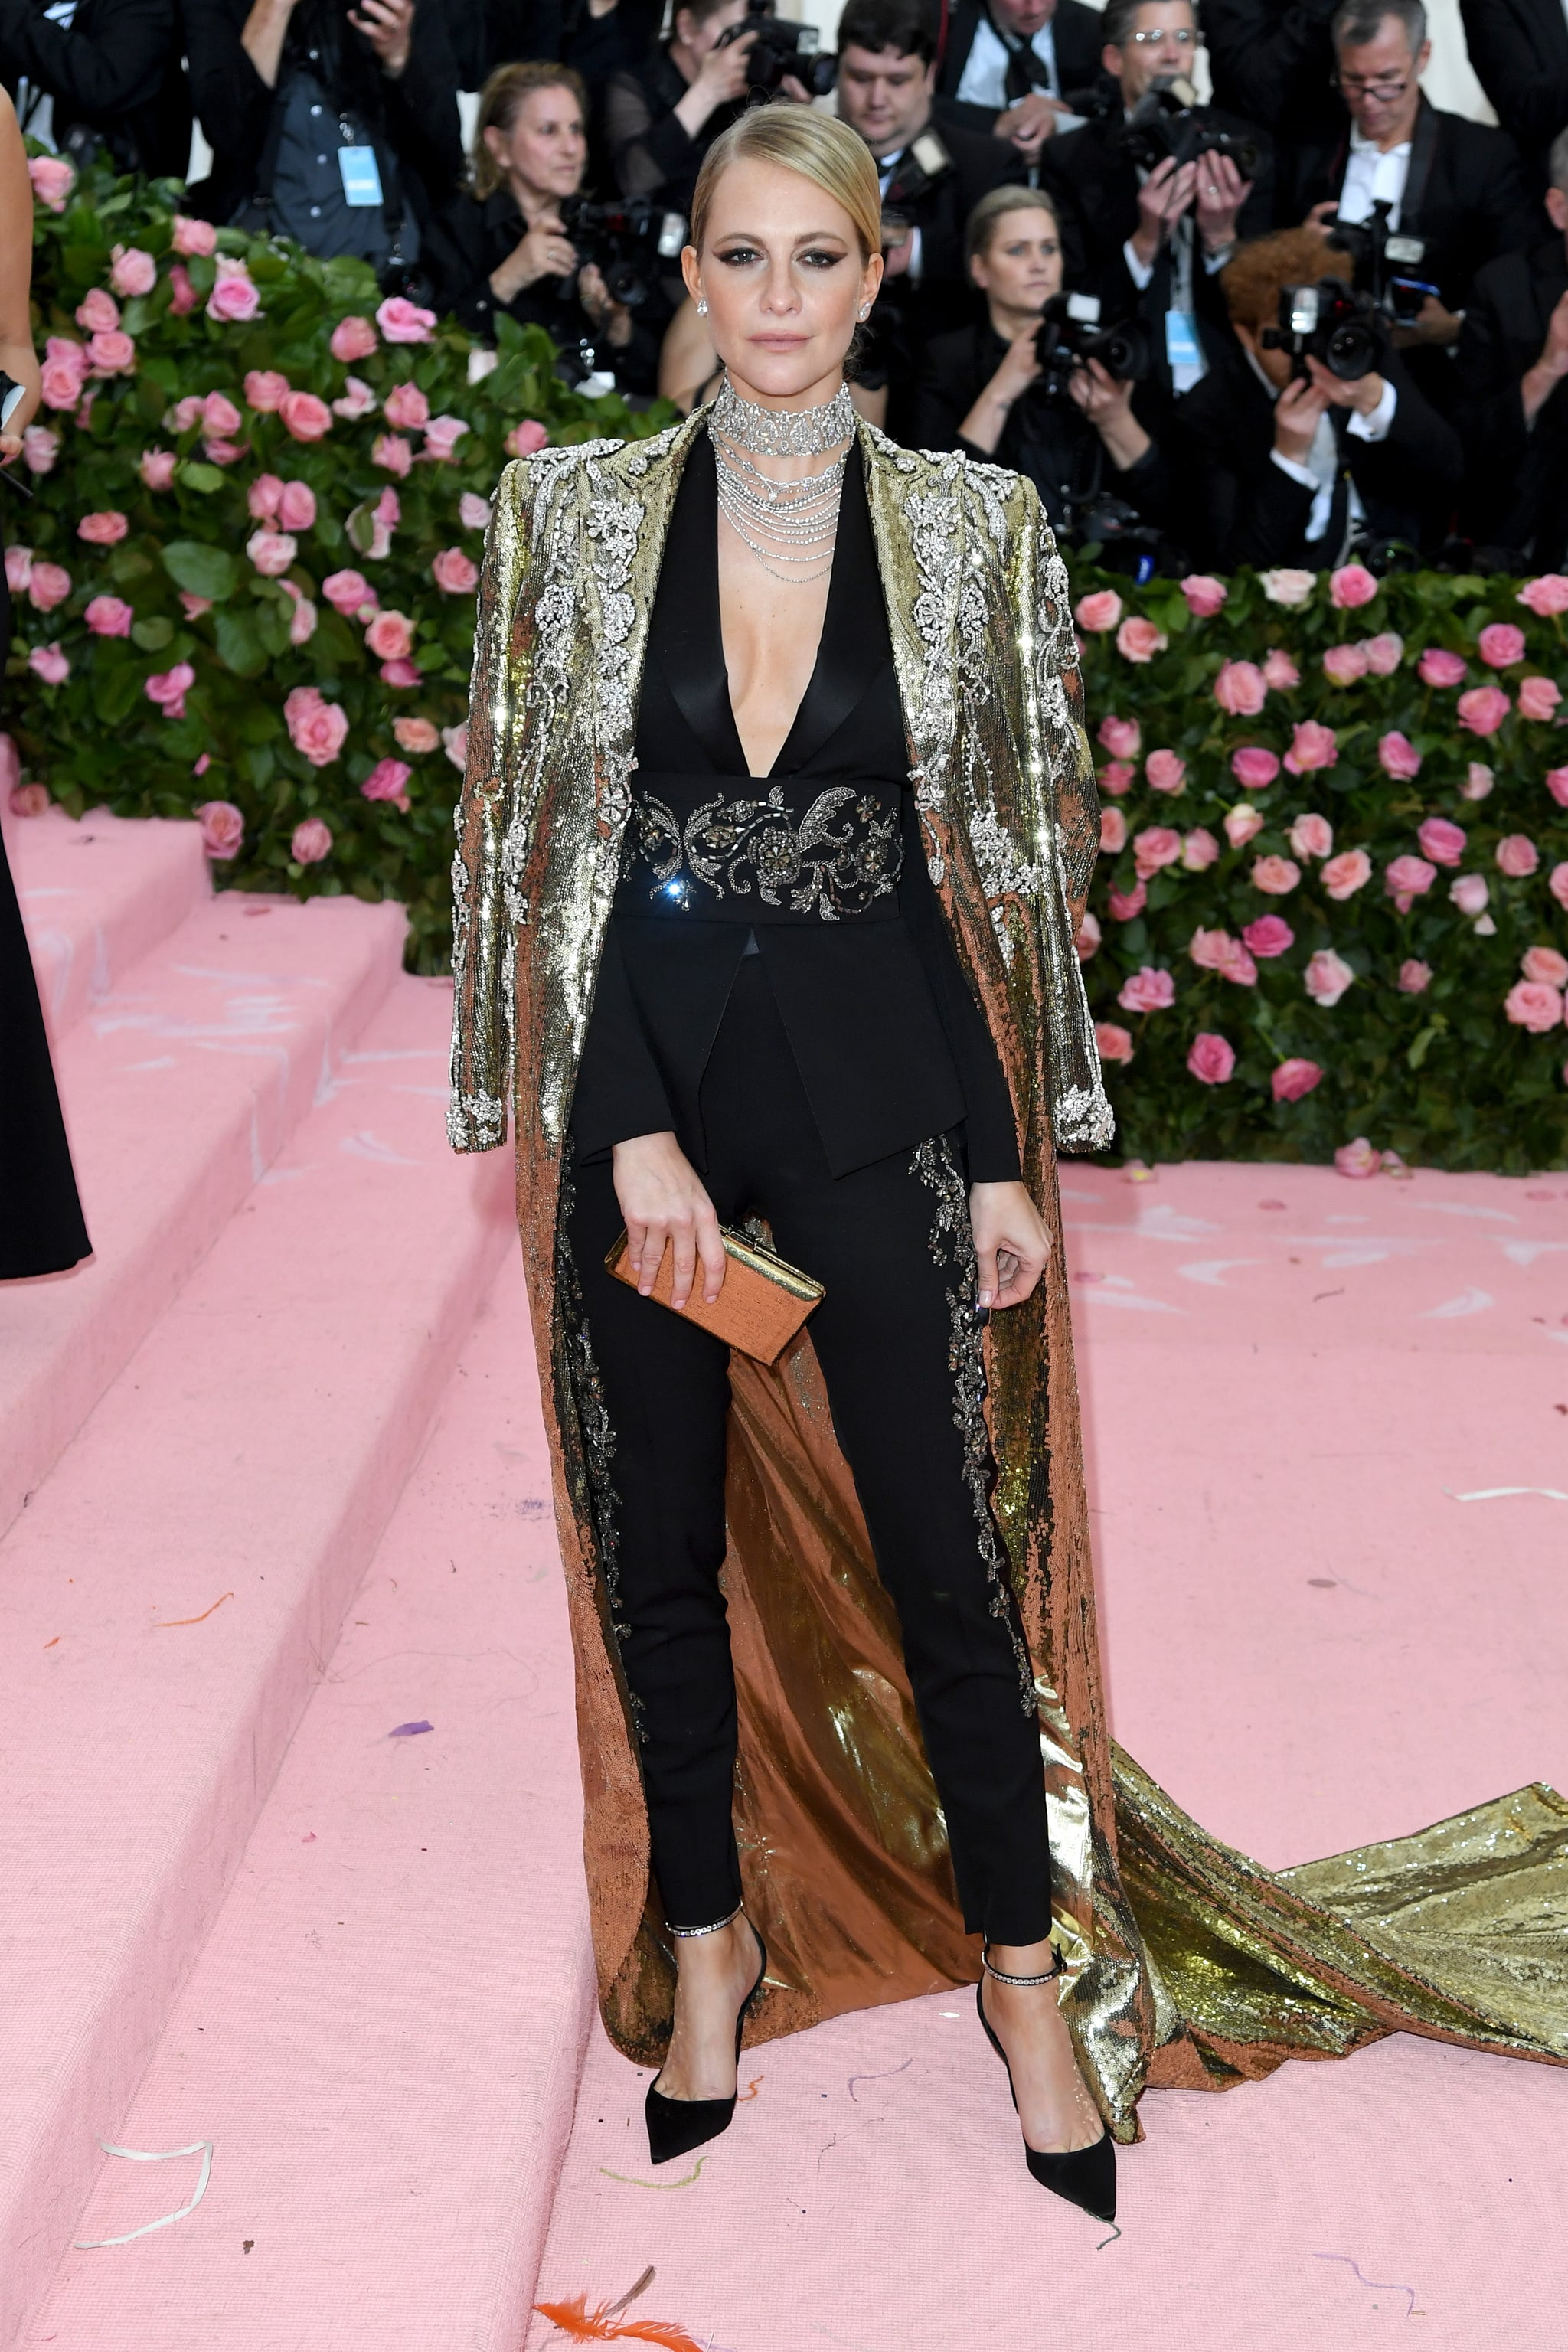 Poppy Delevingne at the 2019 Met Gala | These Met Gala Looks Are Dramatic  Enough to Entertain You For the Rest of the Year | POPSUGAR Fashion Photo  163